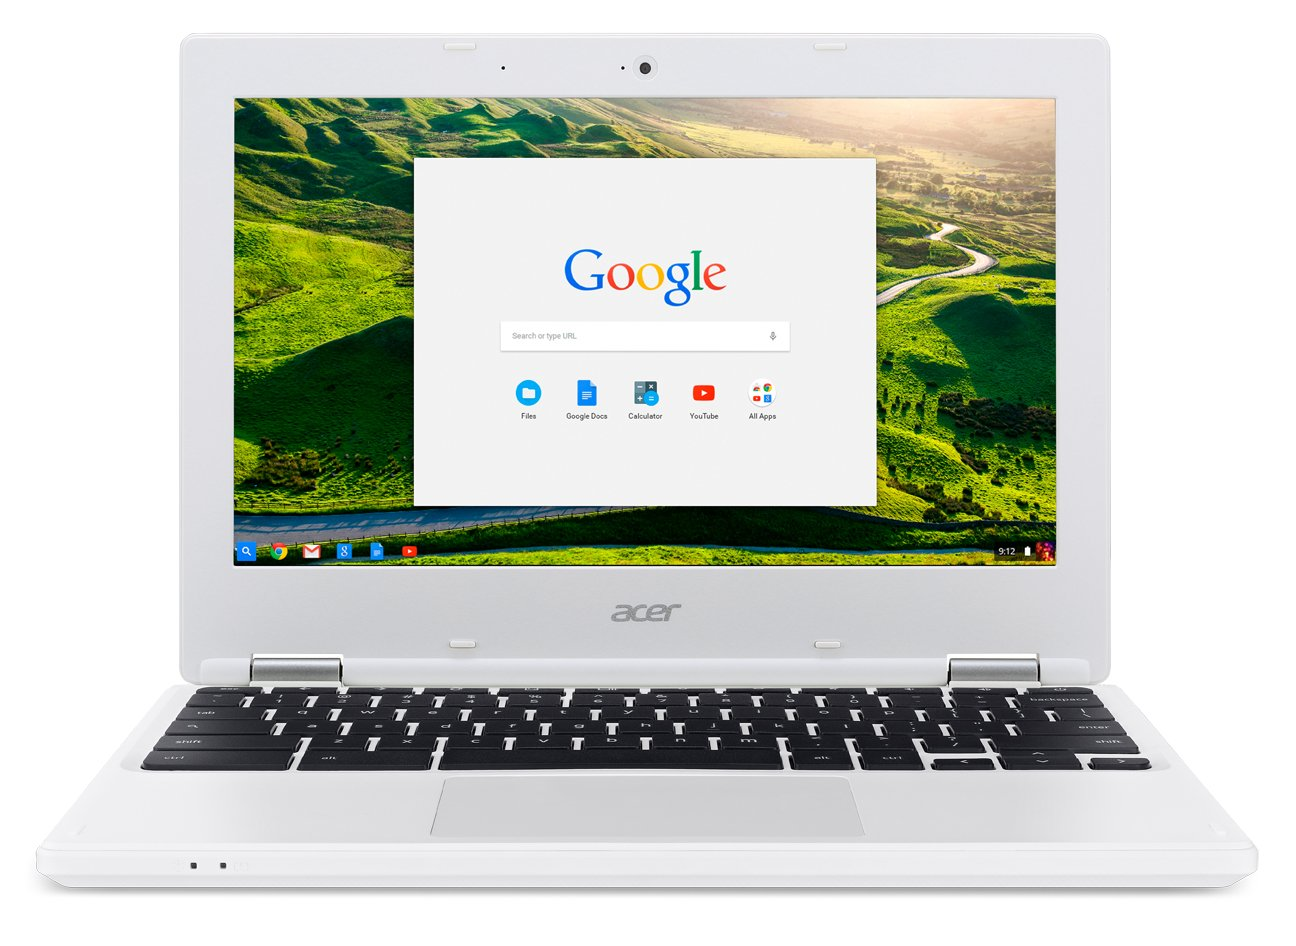 Acer Chromebook 11, 11.6-inch HD, Intel Celeron N2840, 4GB DDR3L, 16GB Storage, Chrome, CB3-131-C8GZ by Acer